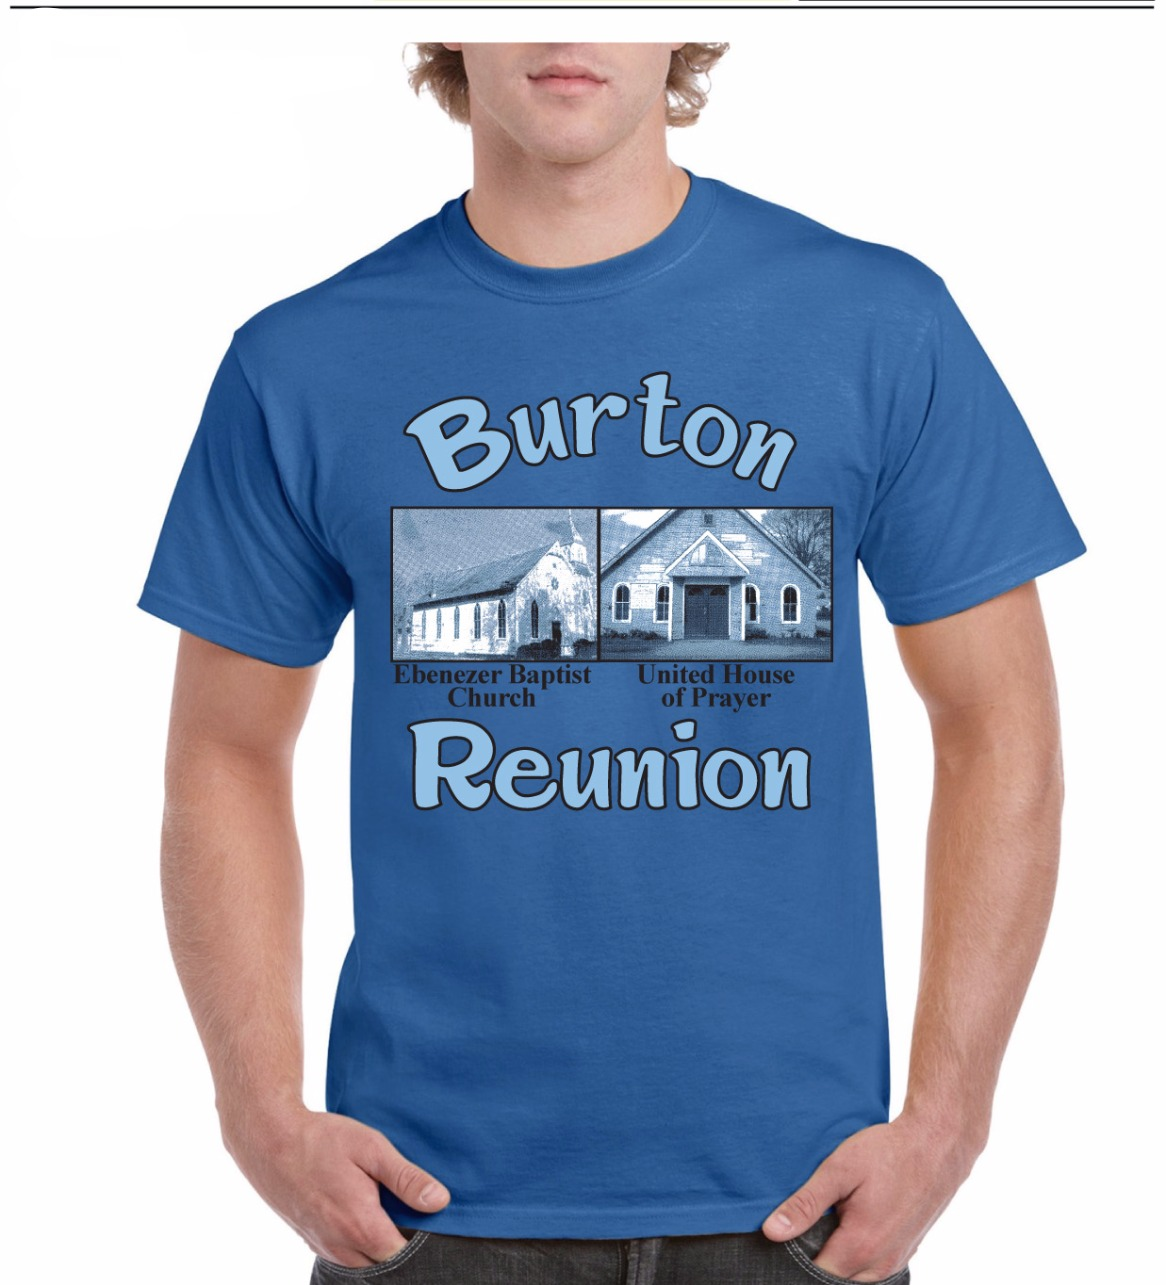 Approval Burton Reunion shirts_8-31-16 (4)_edited